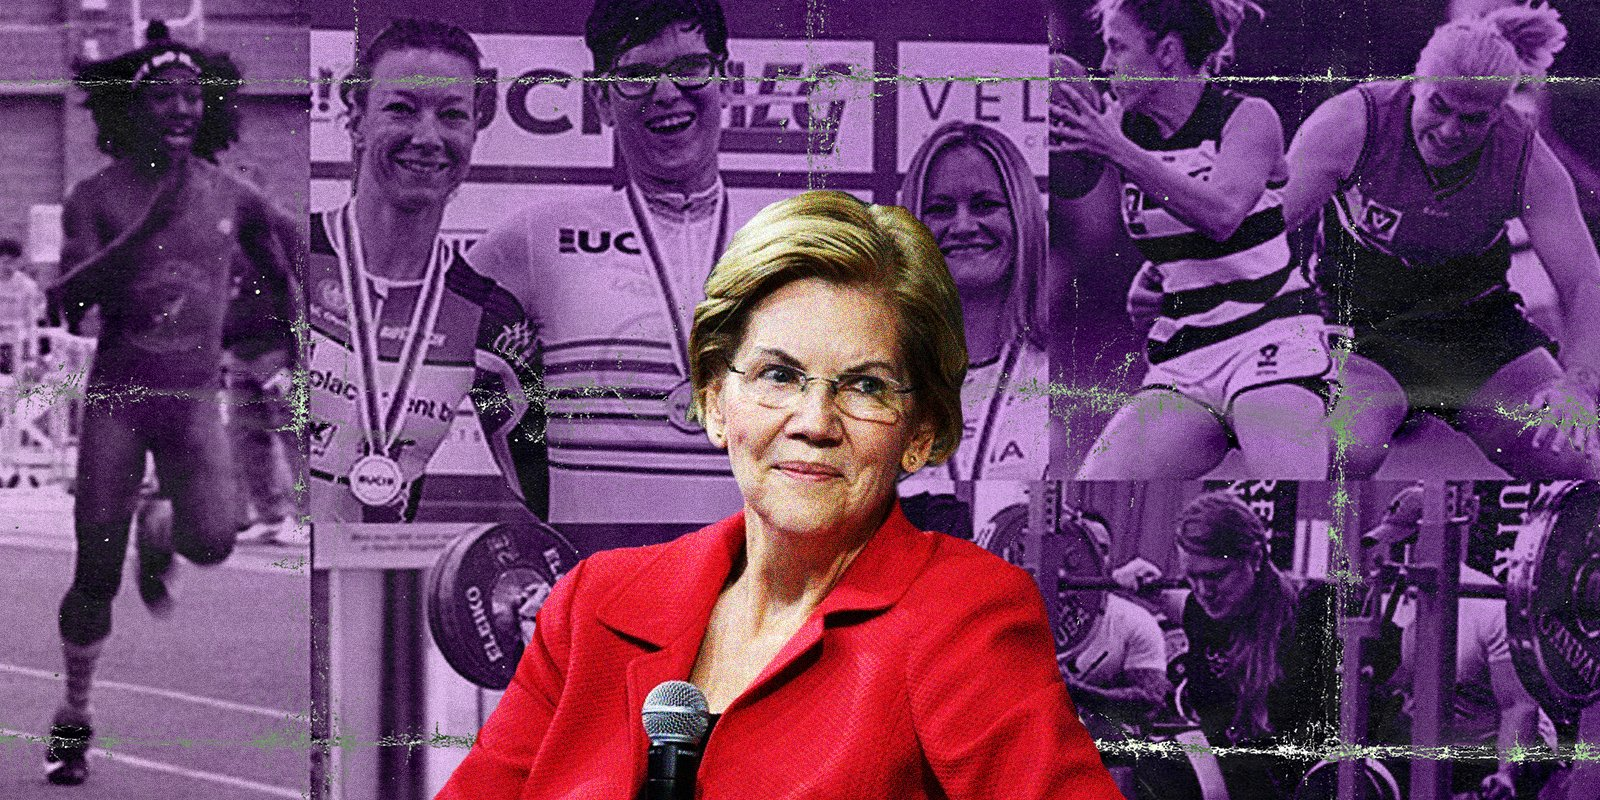 Elizabeth Warren has come out in support of biological male athletes competing with women despite the obvious physical advantages they possess.